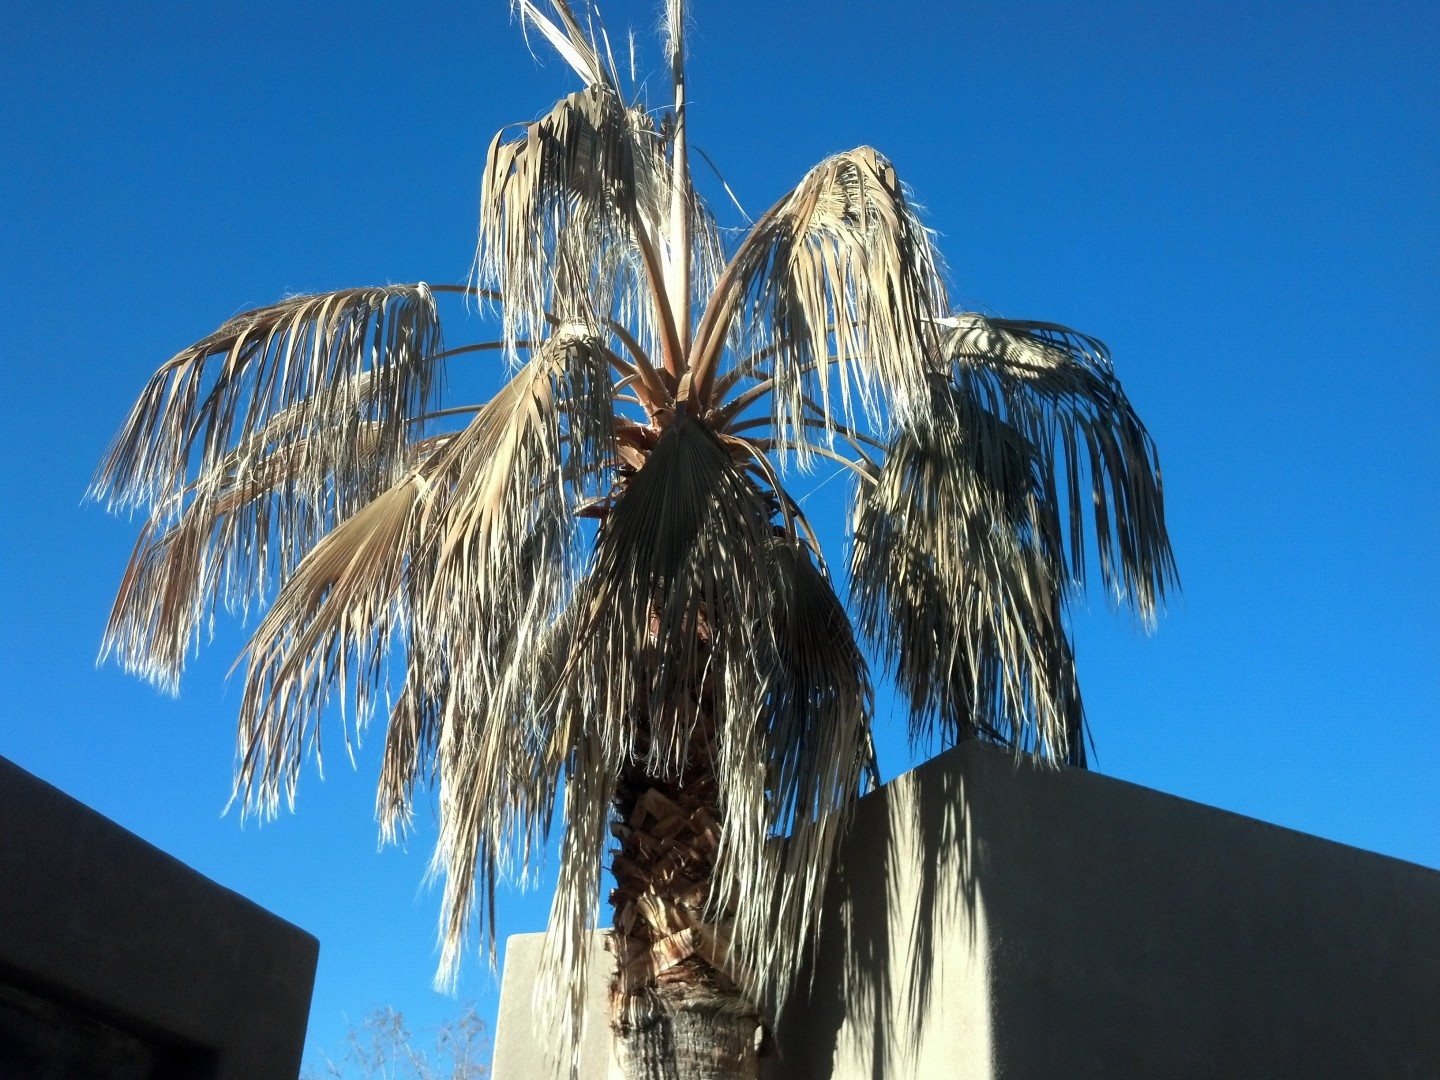 St. George palm trees after the December 2013 freeze, St. George, Utah, Jan. 4, 2014 | Photo by Joyce Kuzmanic, St. George News